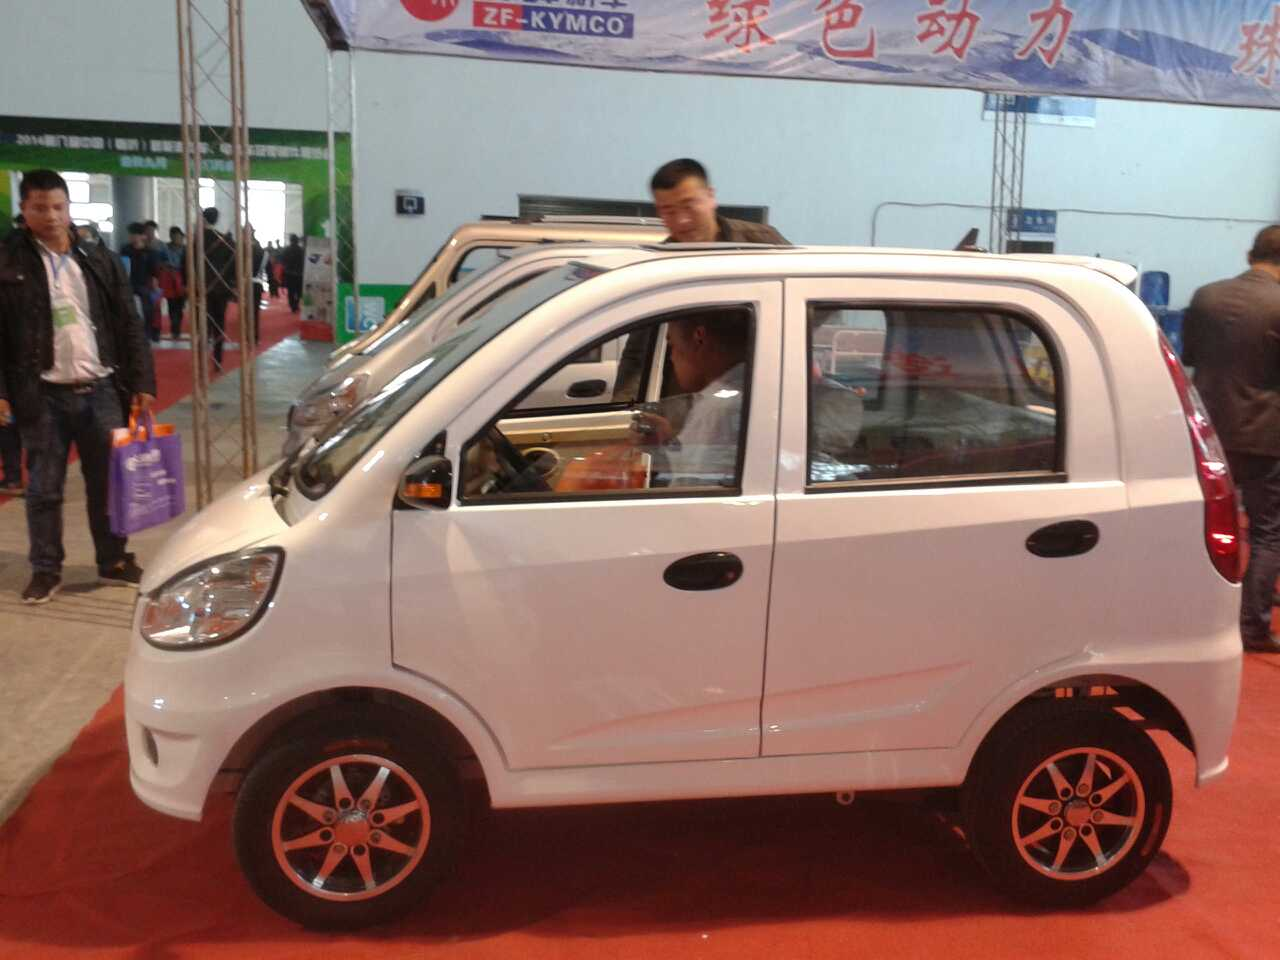 60v perfect design electric car on sale in China